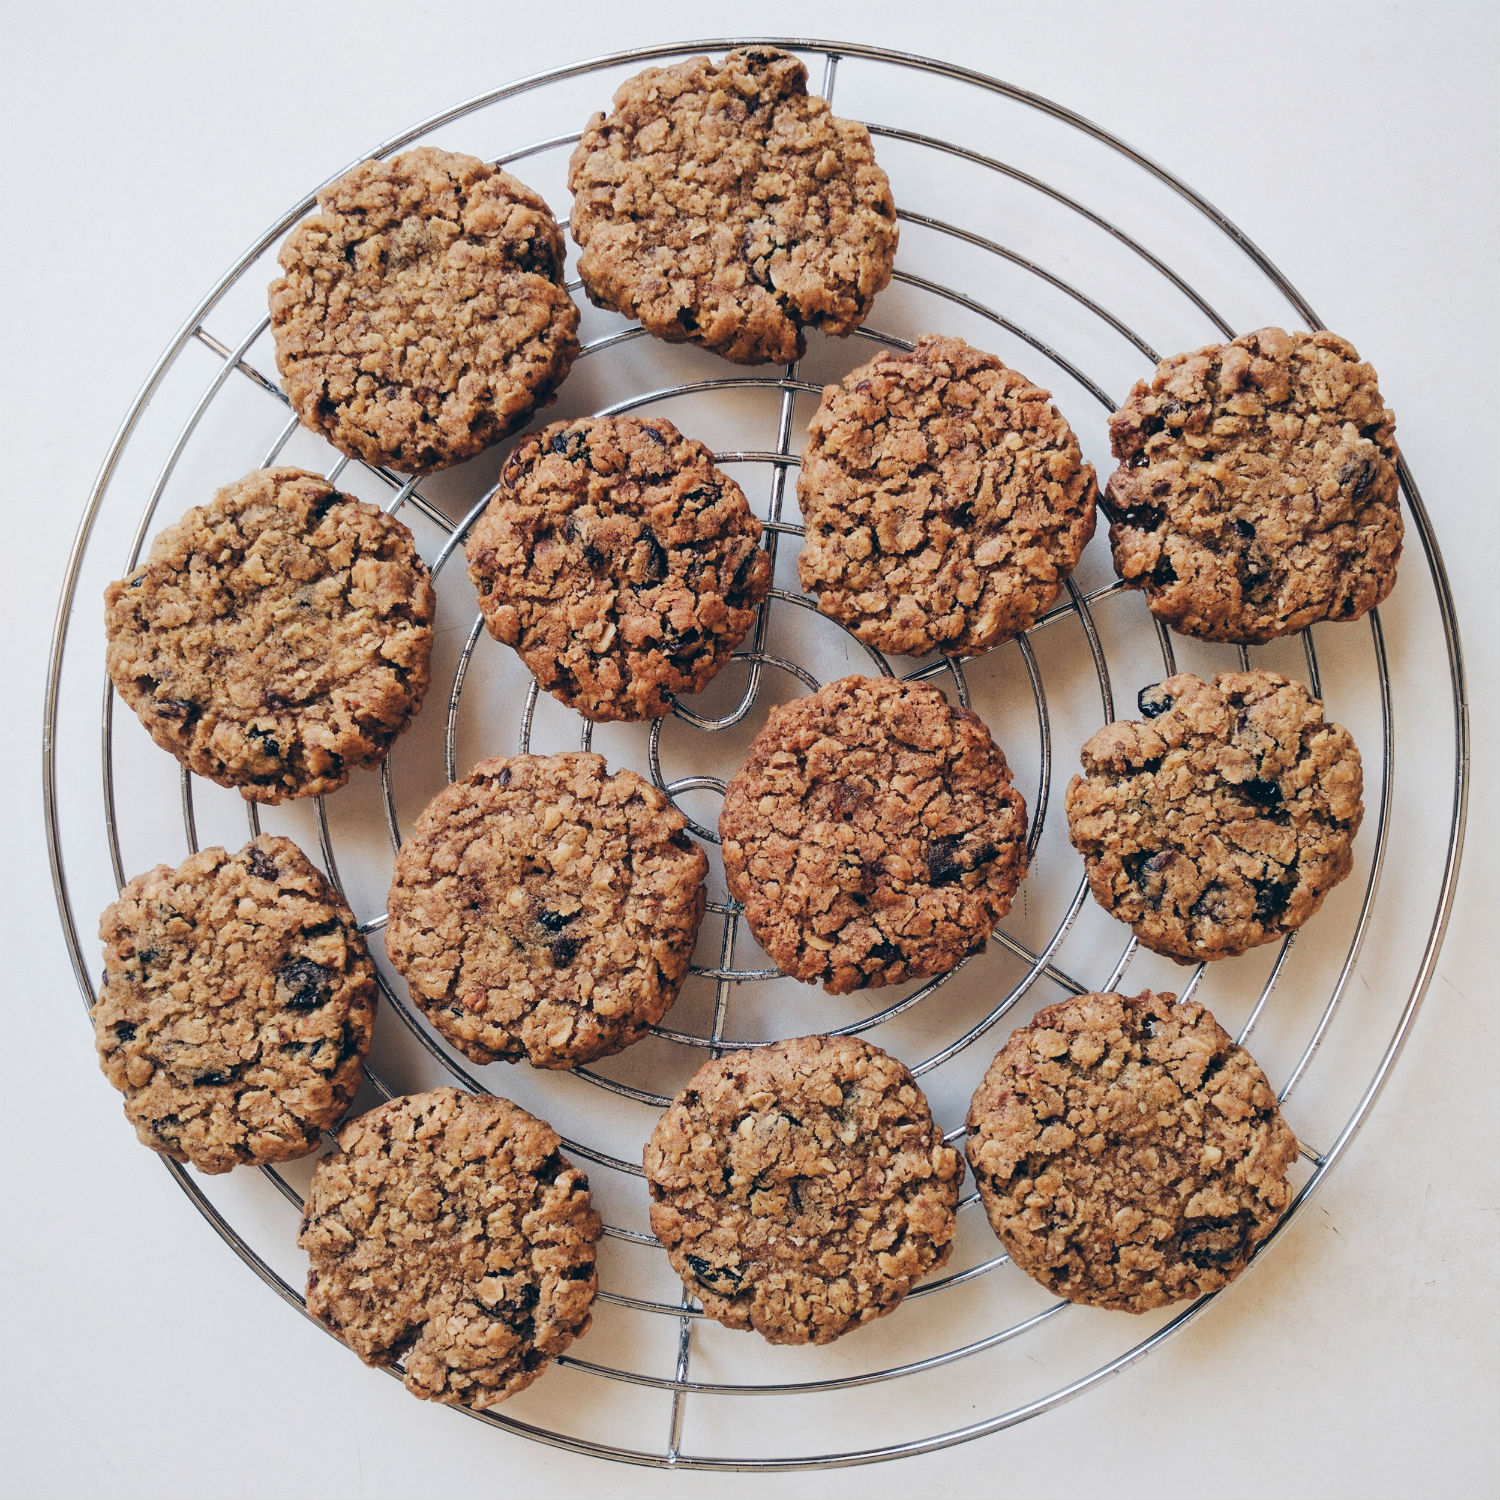 Oatmeal cookies with raisins and dried cranberries.